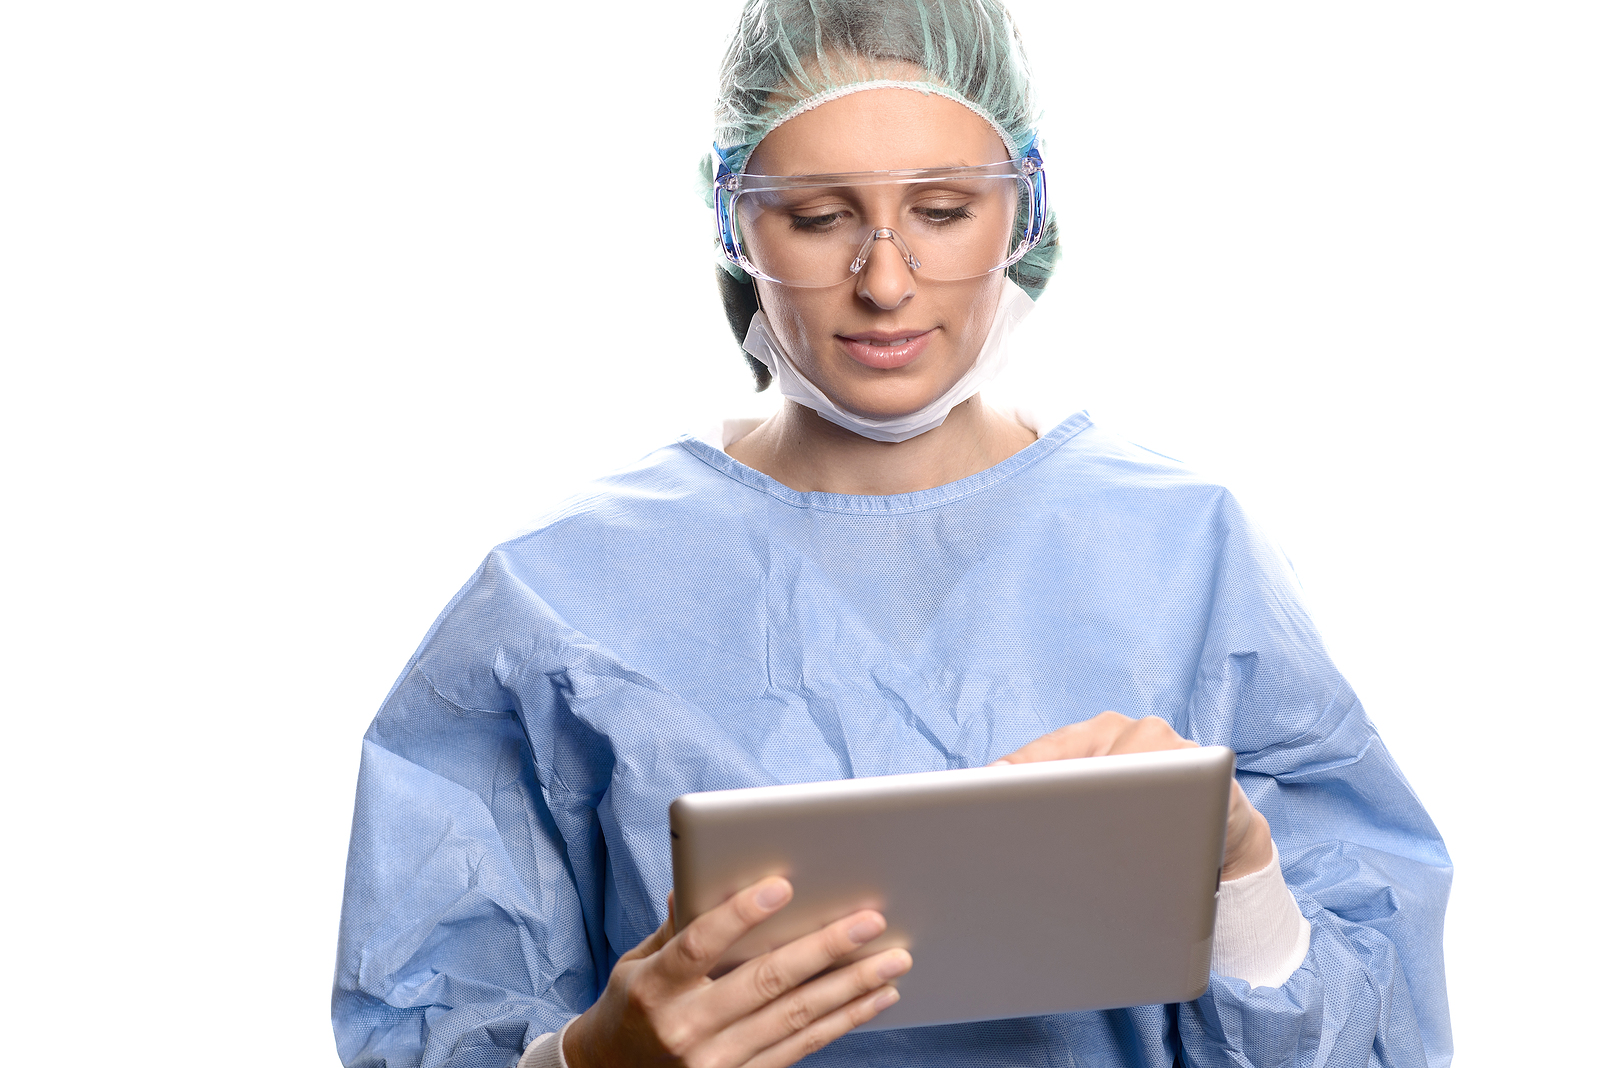 Doctor In Scrubs Entering Data On A Tablet